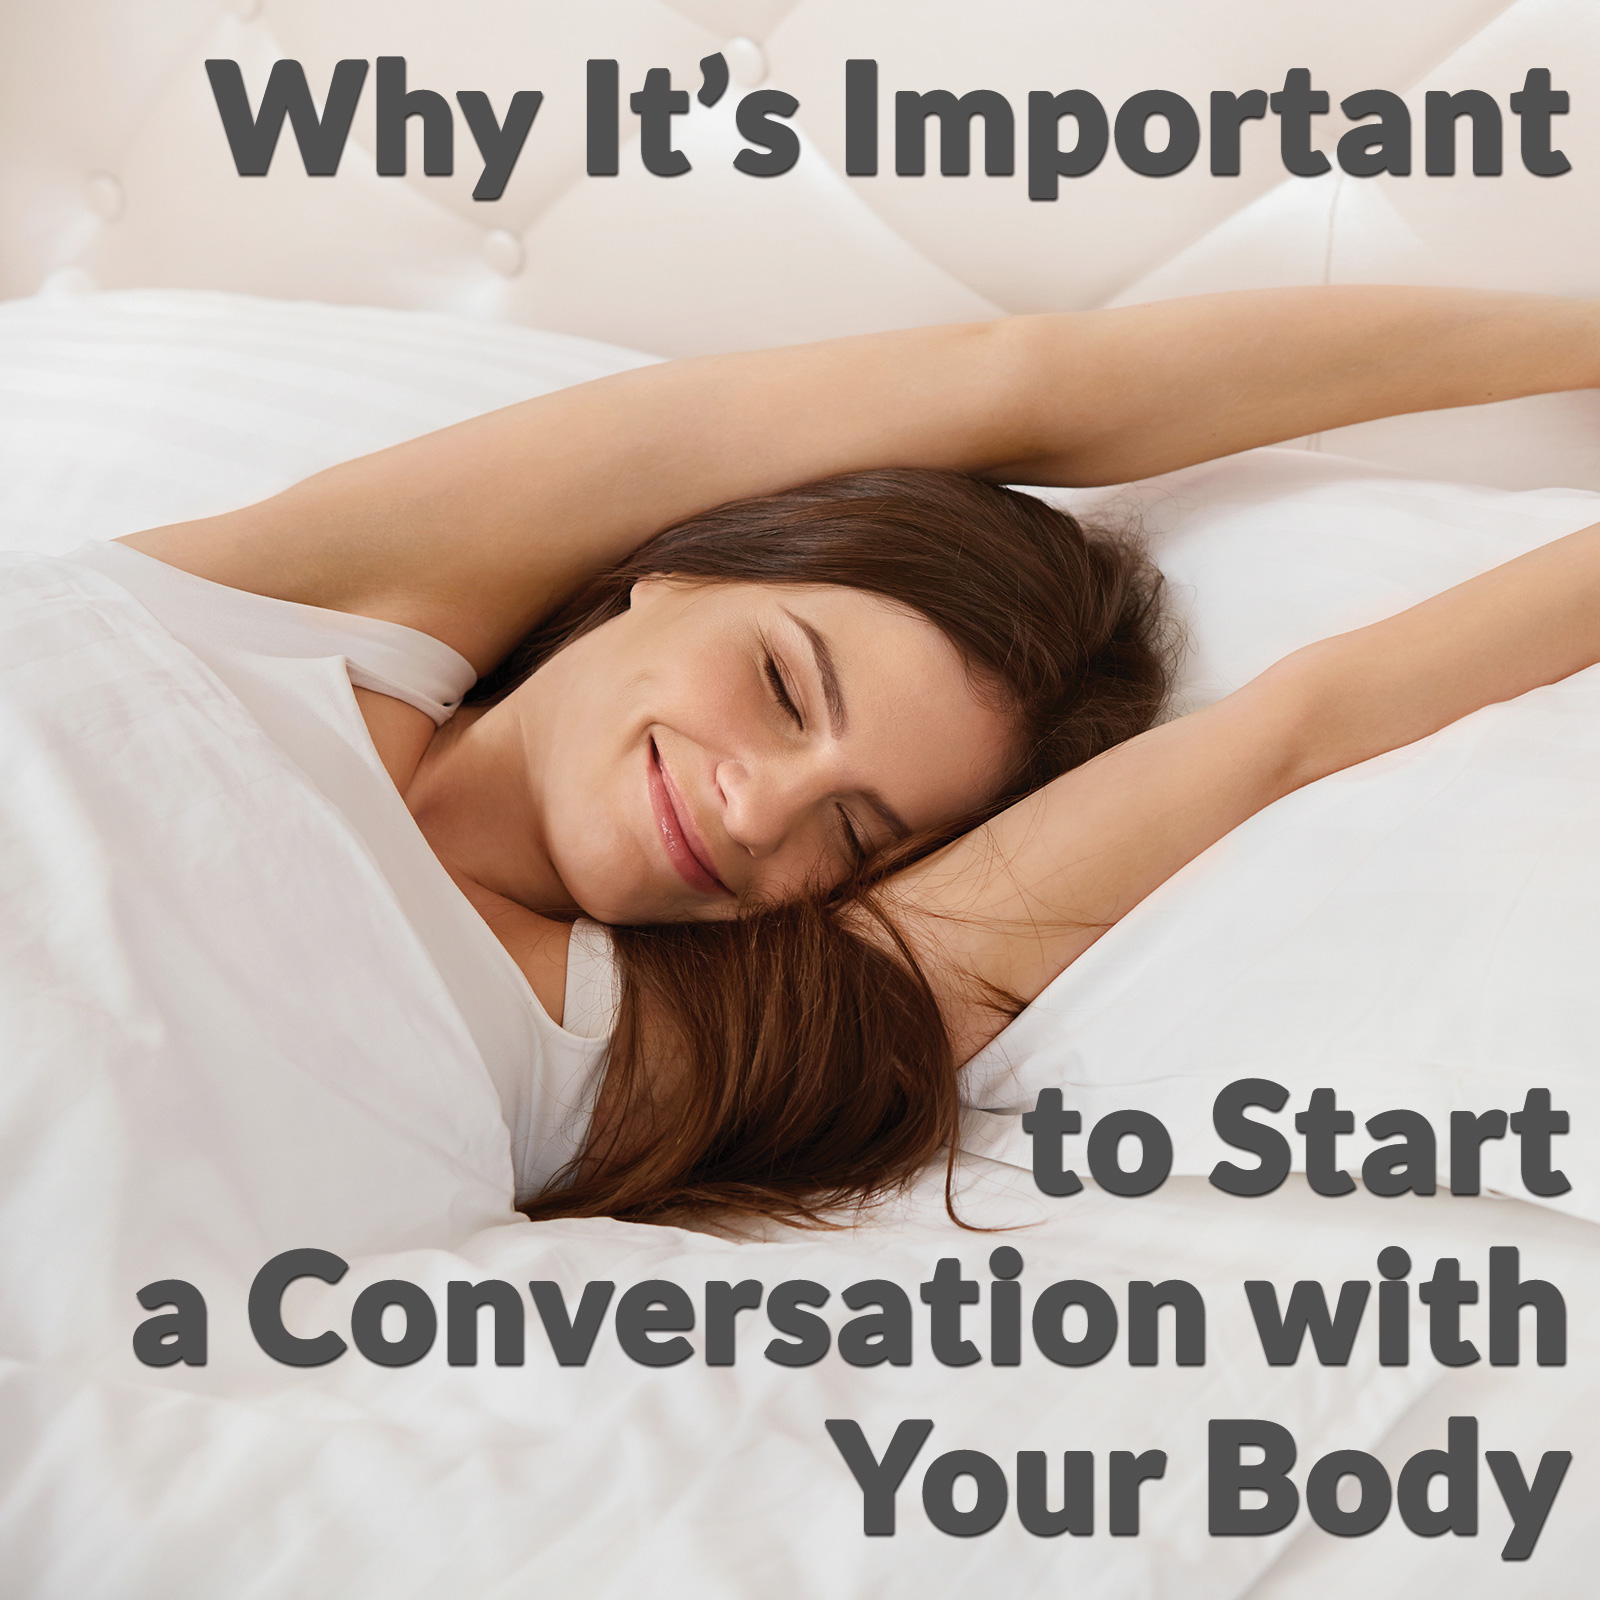 Why It's Important to Start a Conversation with Your Body